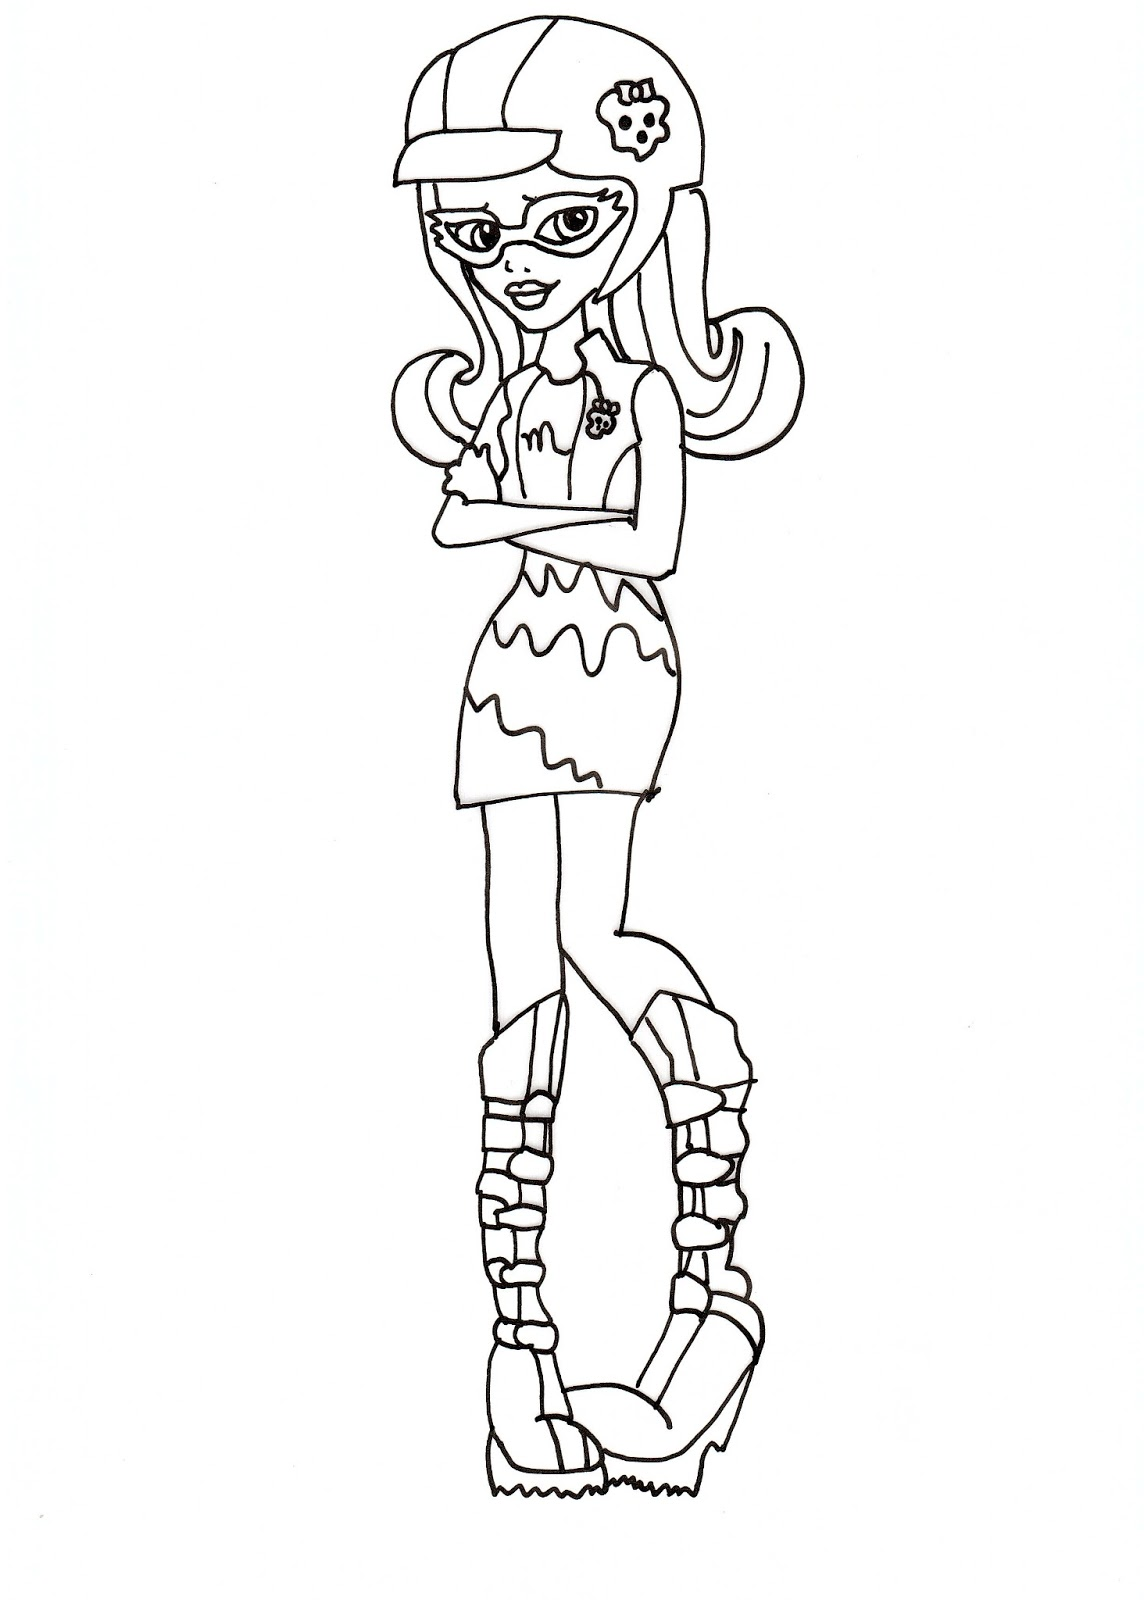 Free Printable Monster High Coloring Pages: November 2012